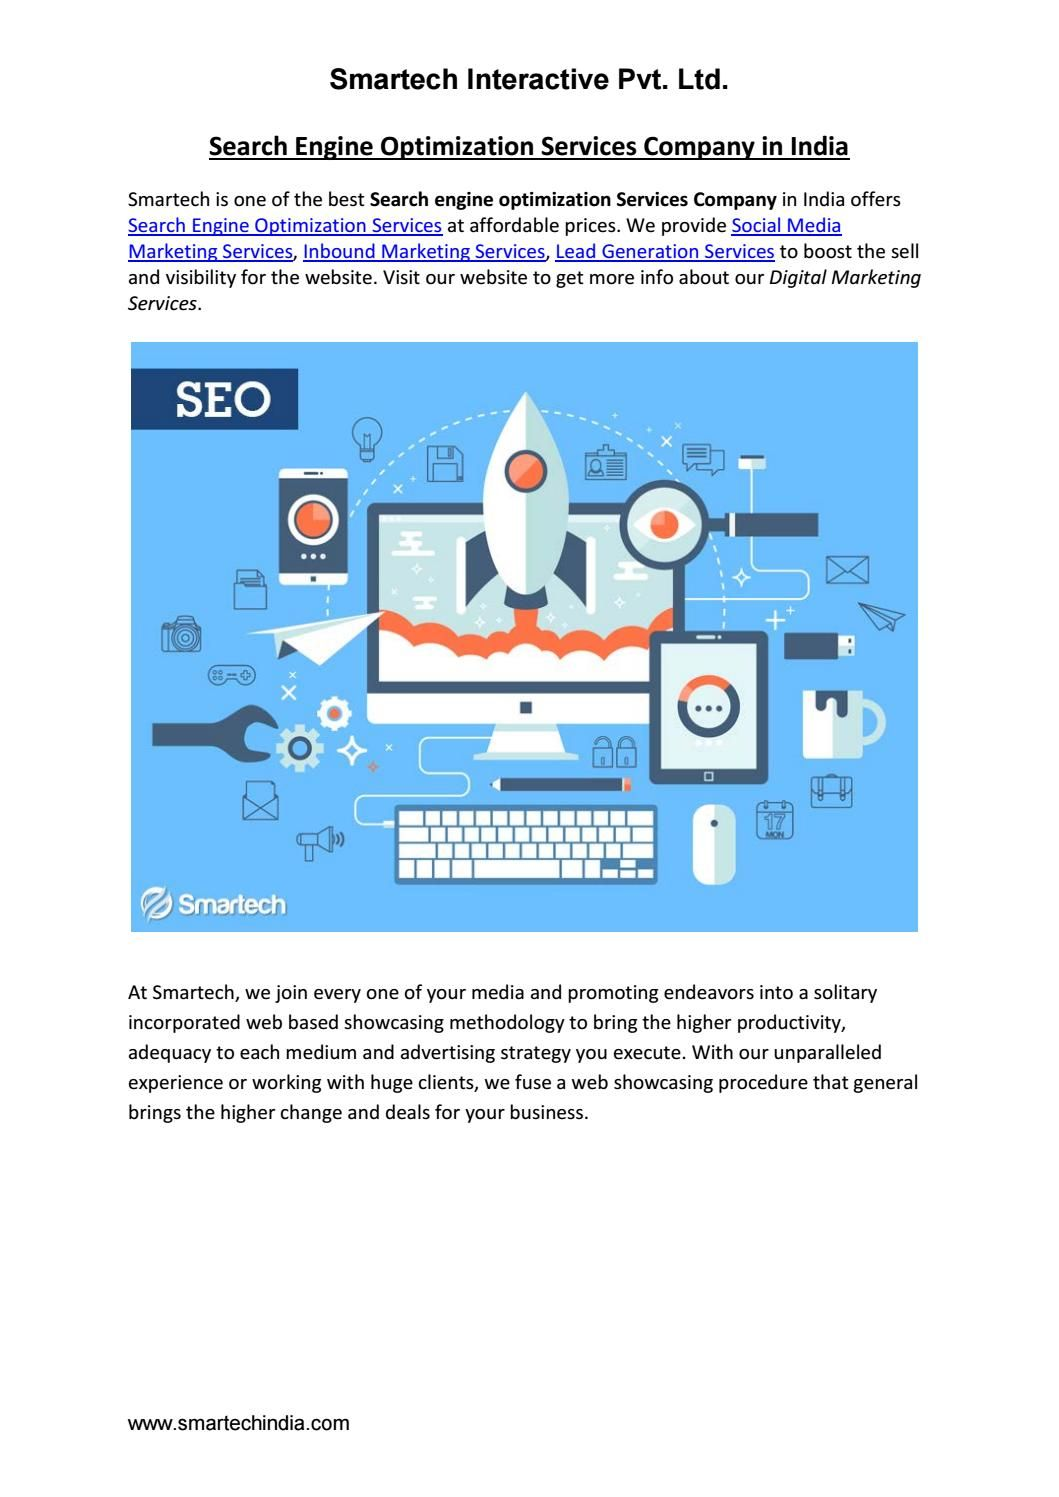 Search Engine Optimization Services Company in India in 2019